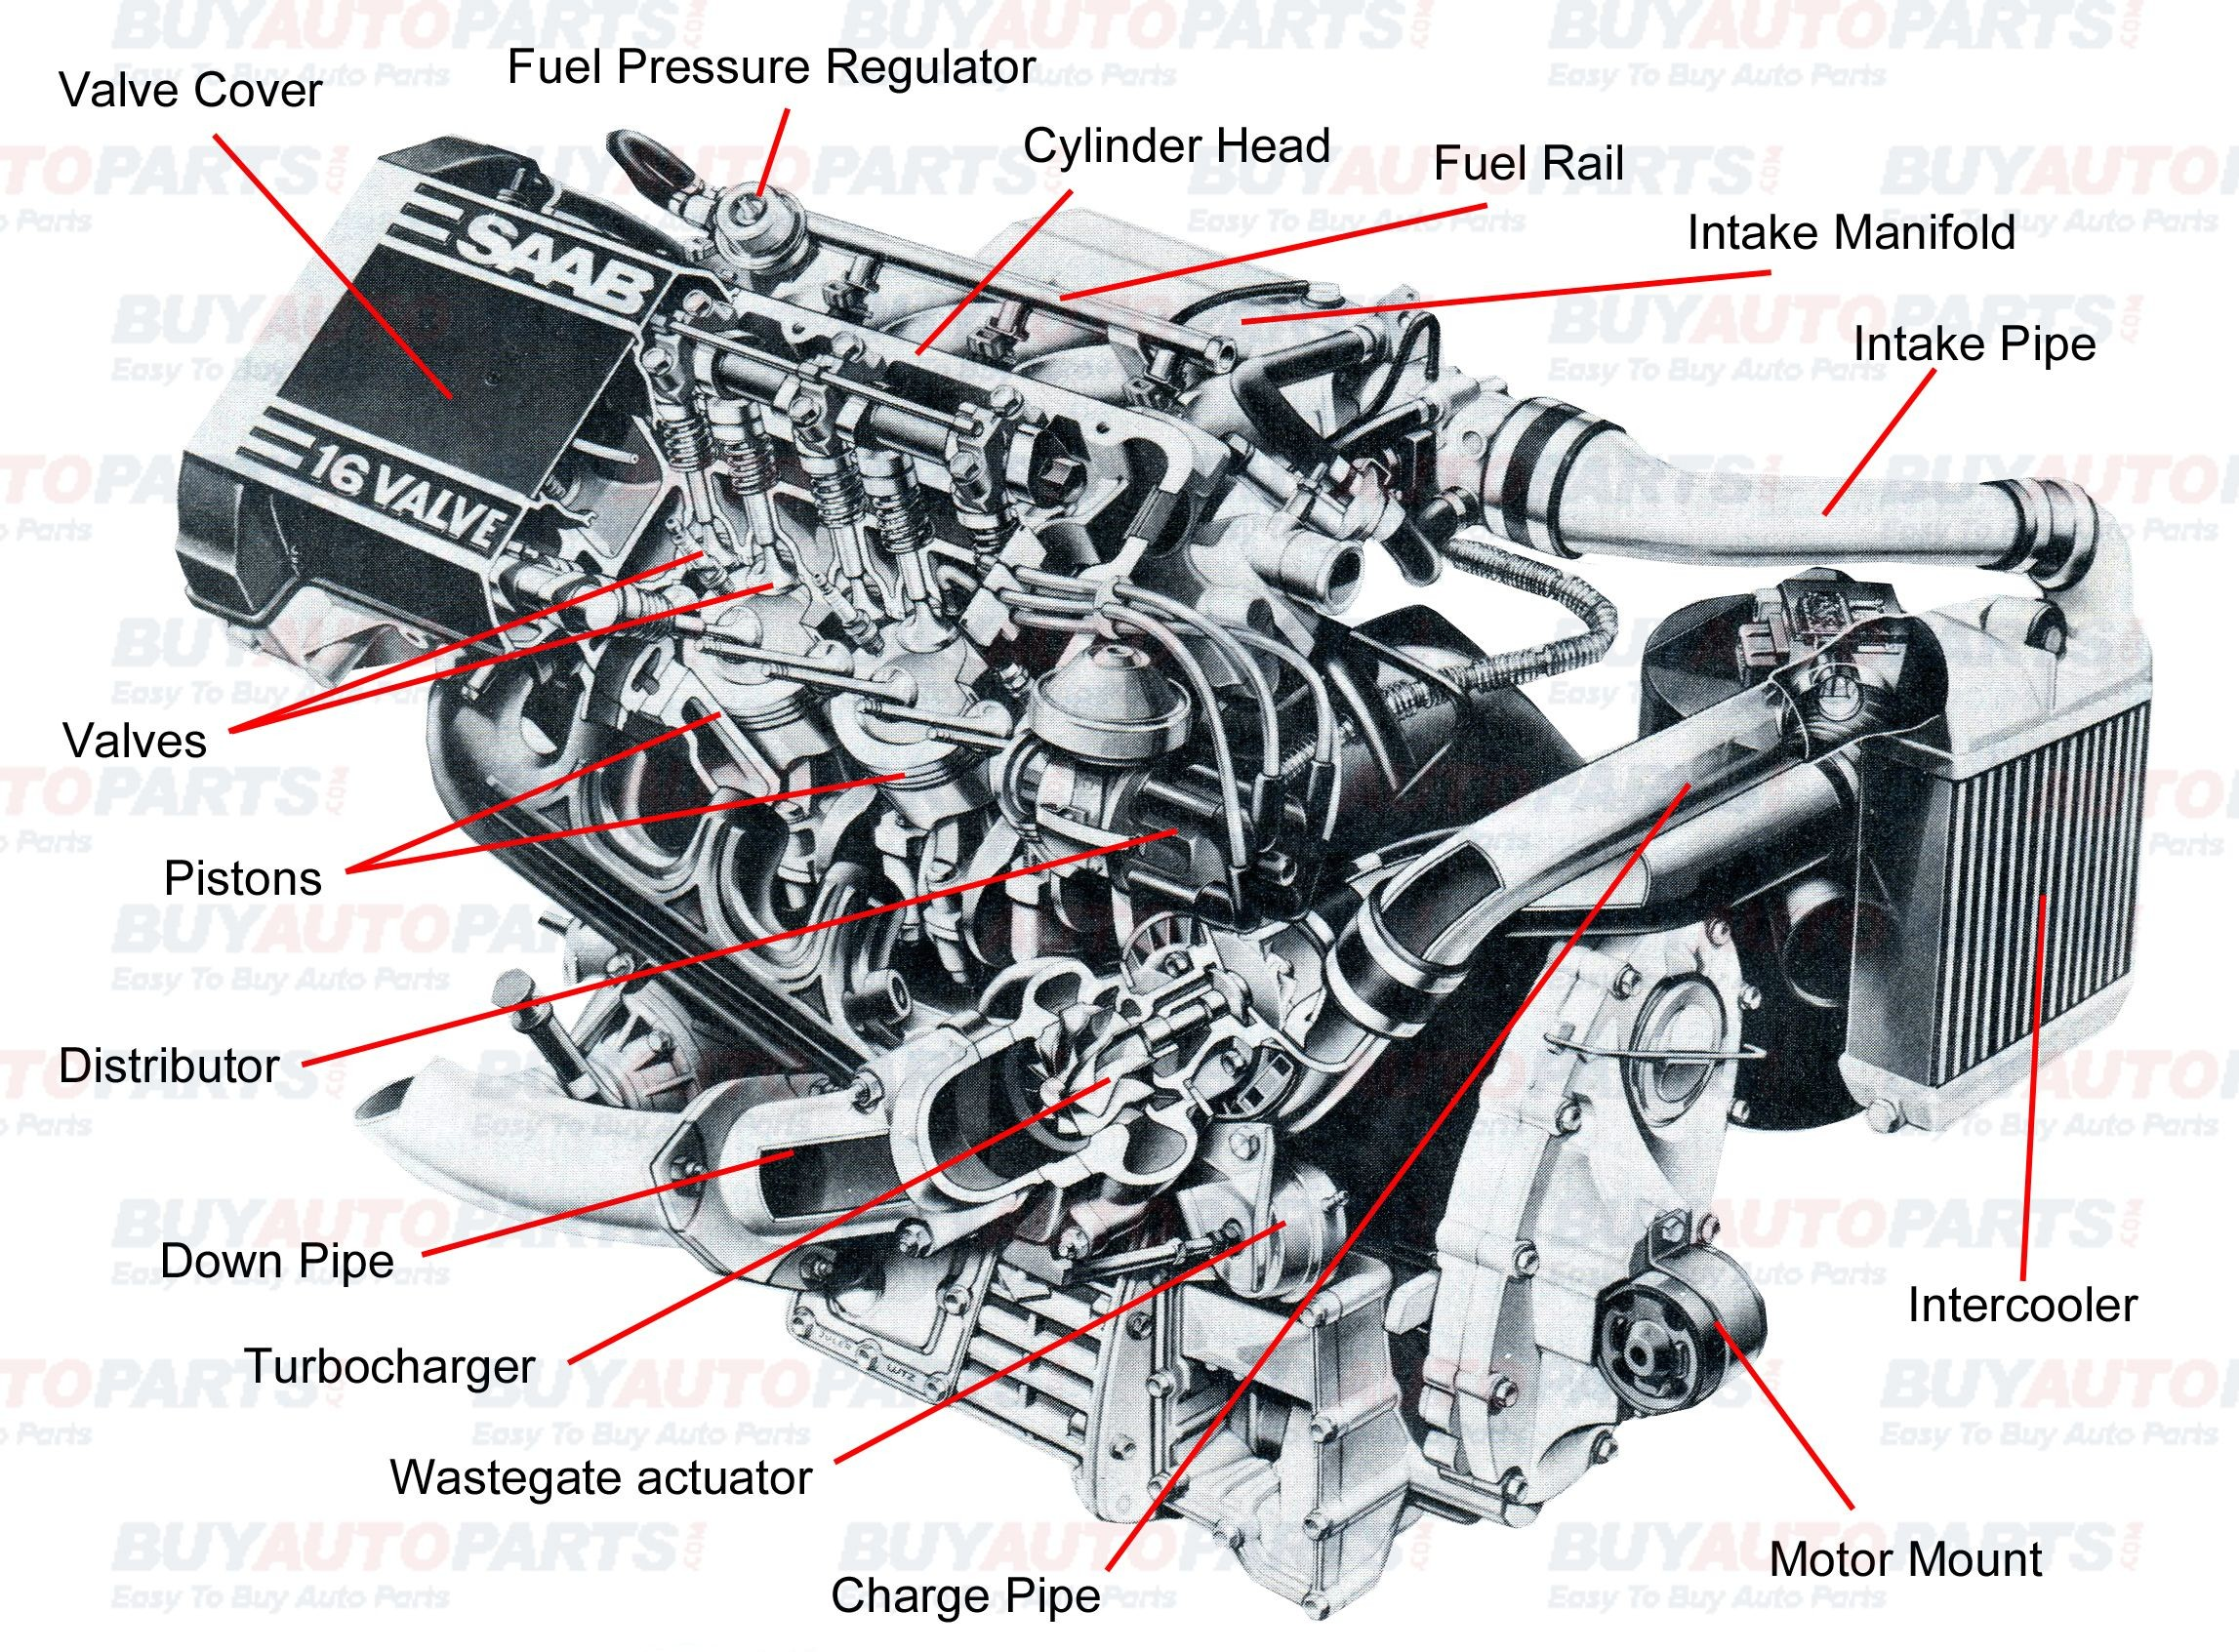 V8 Engine Parts Diagram Pin by Jimmiejanet Testellamwfz On What Does An Engine with Turbo Of V8 Engine Parts Diagram